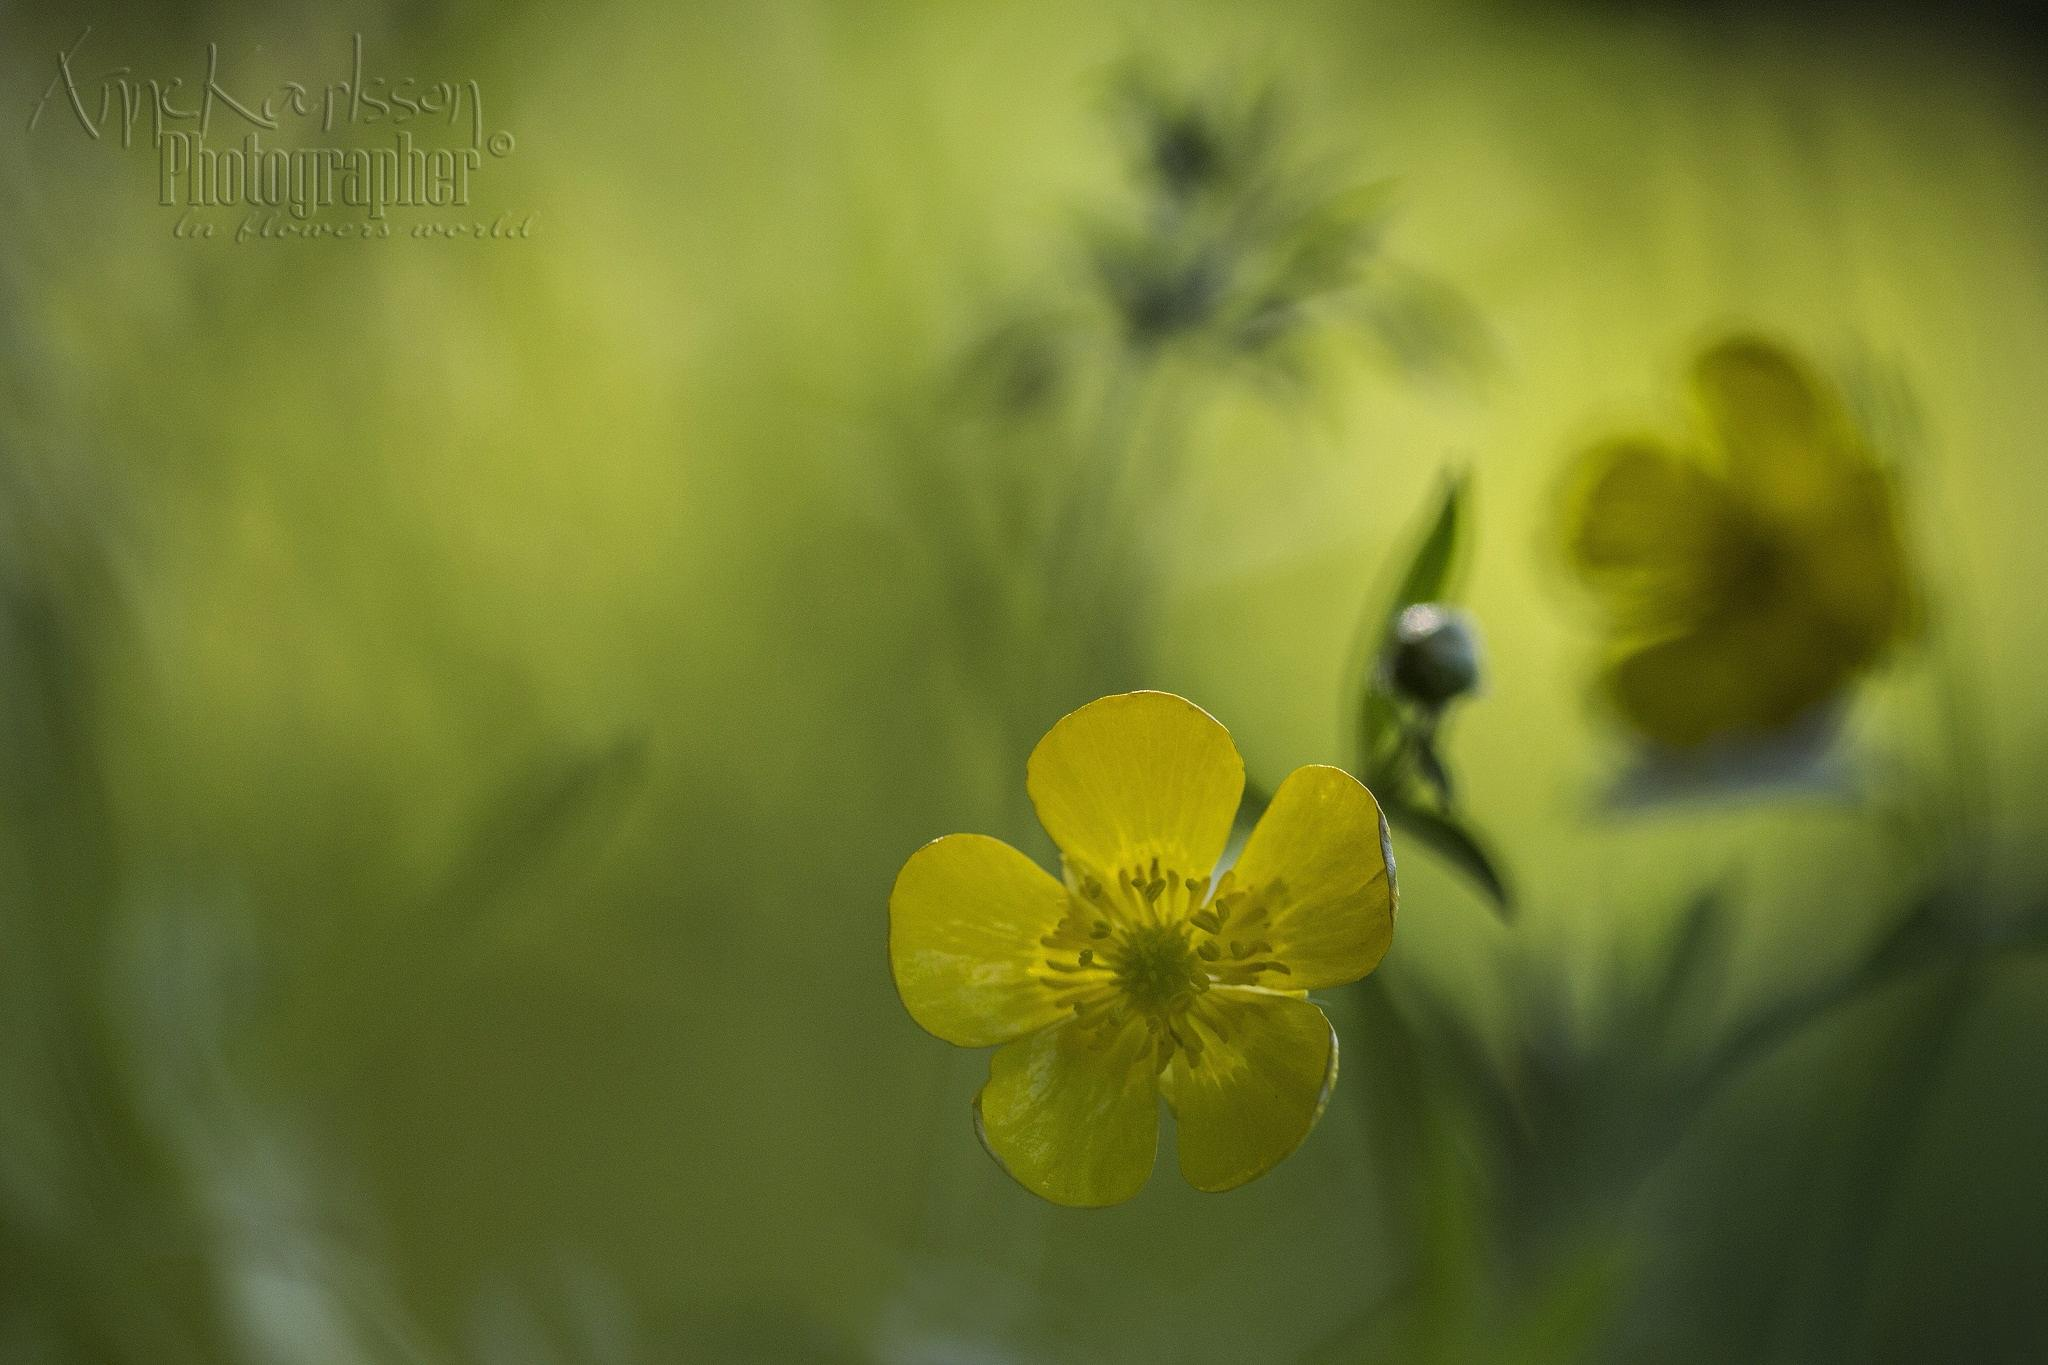 Buttercup in sunny glade by AnneKarlsson